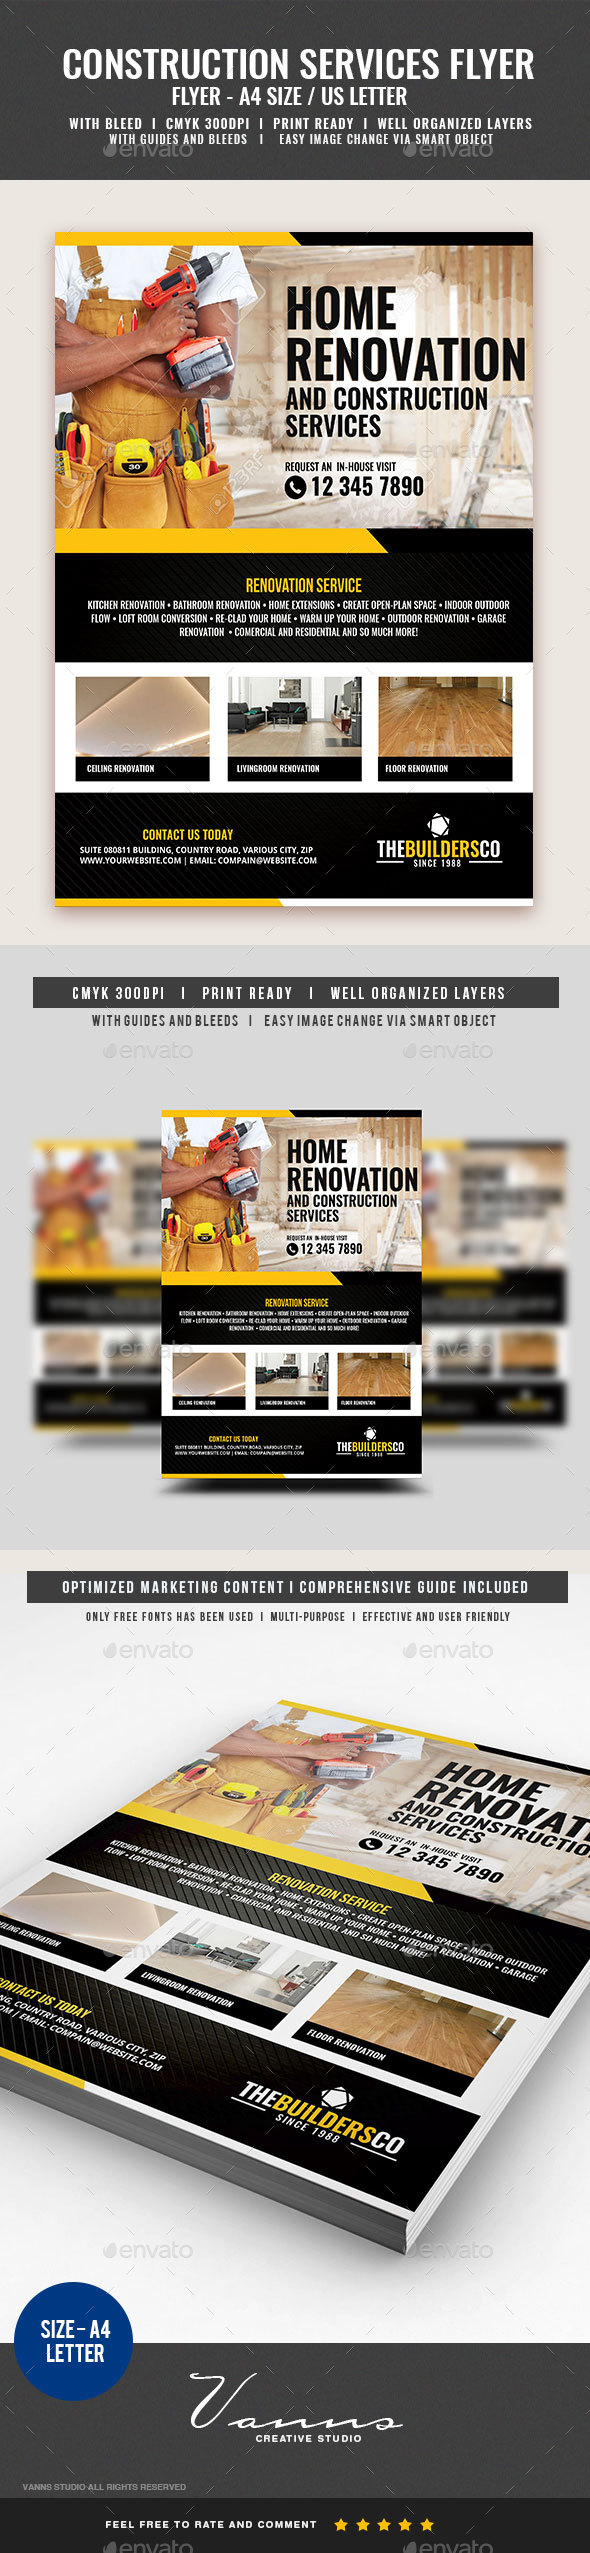 Company Construction and Building Flyer - Corporate Flyers